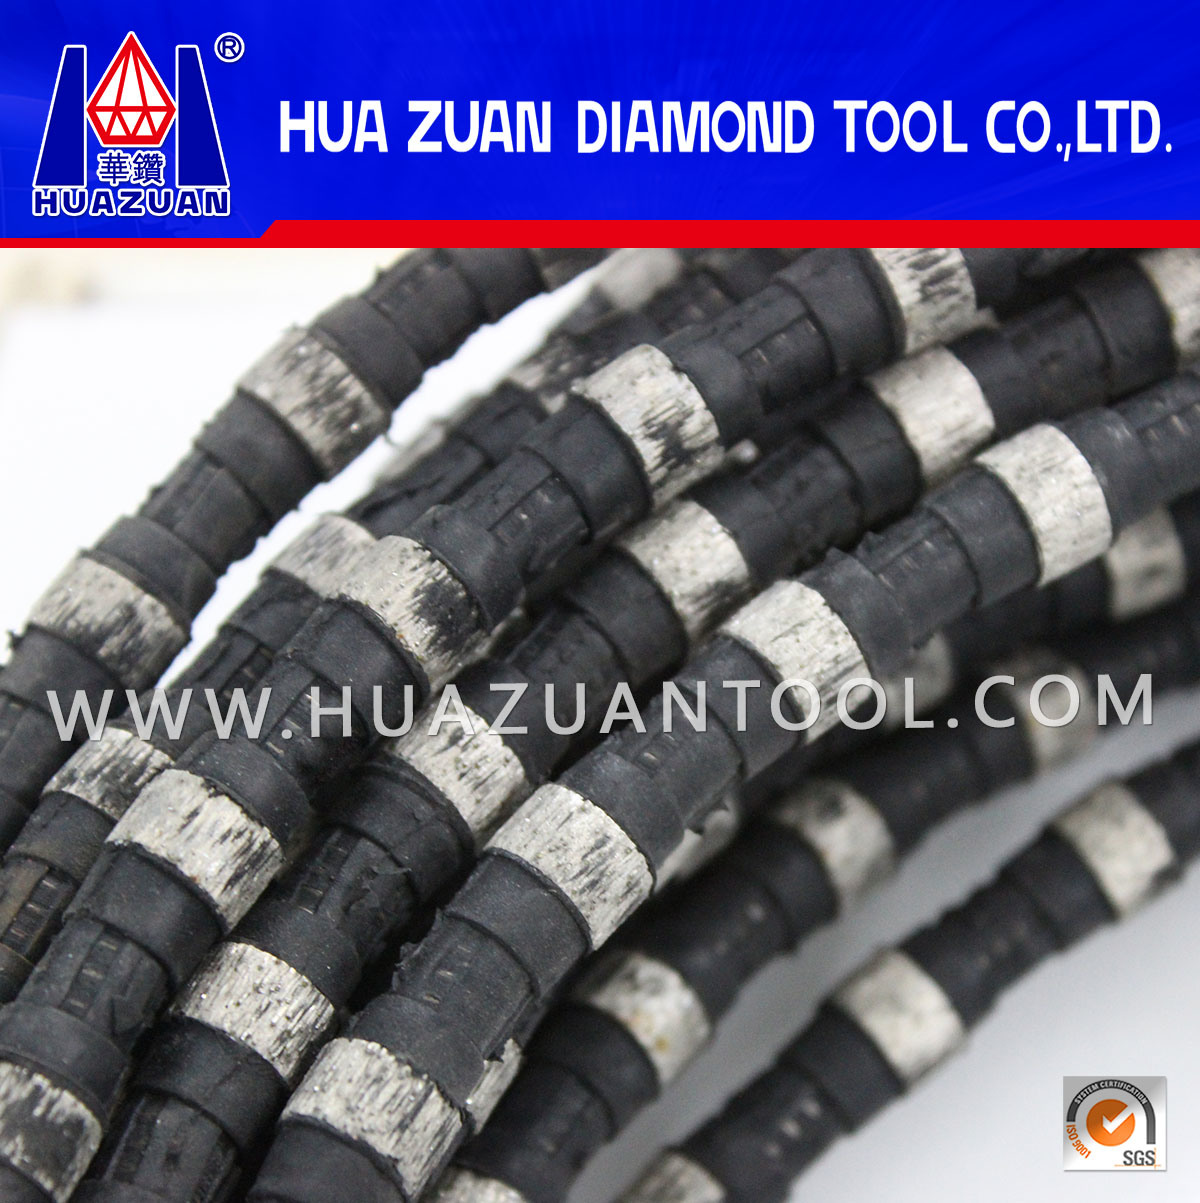 Attractive Wachs Diamond Wire Saw Composition - Electrical Circuit ...